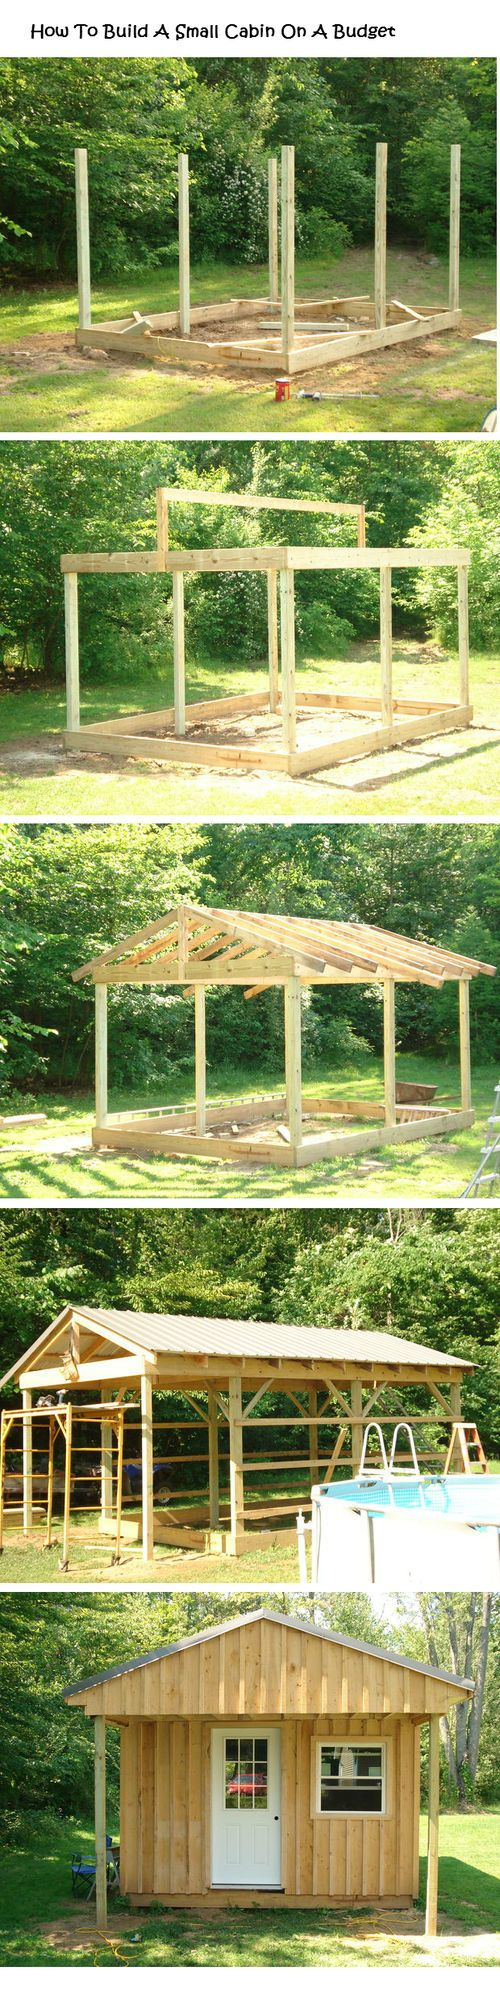 How To Build A Small Cabin On A Budget